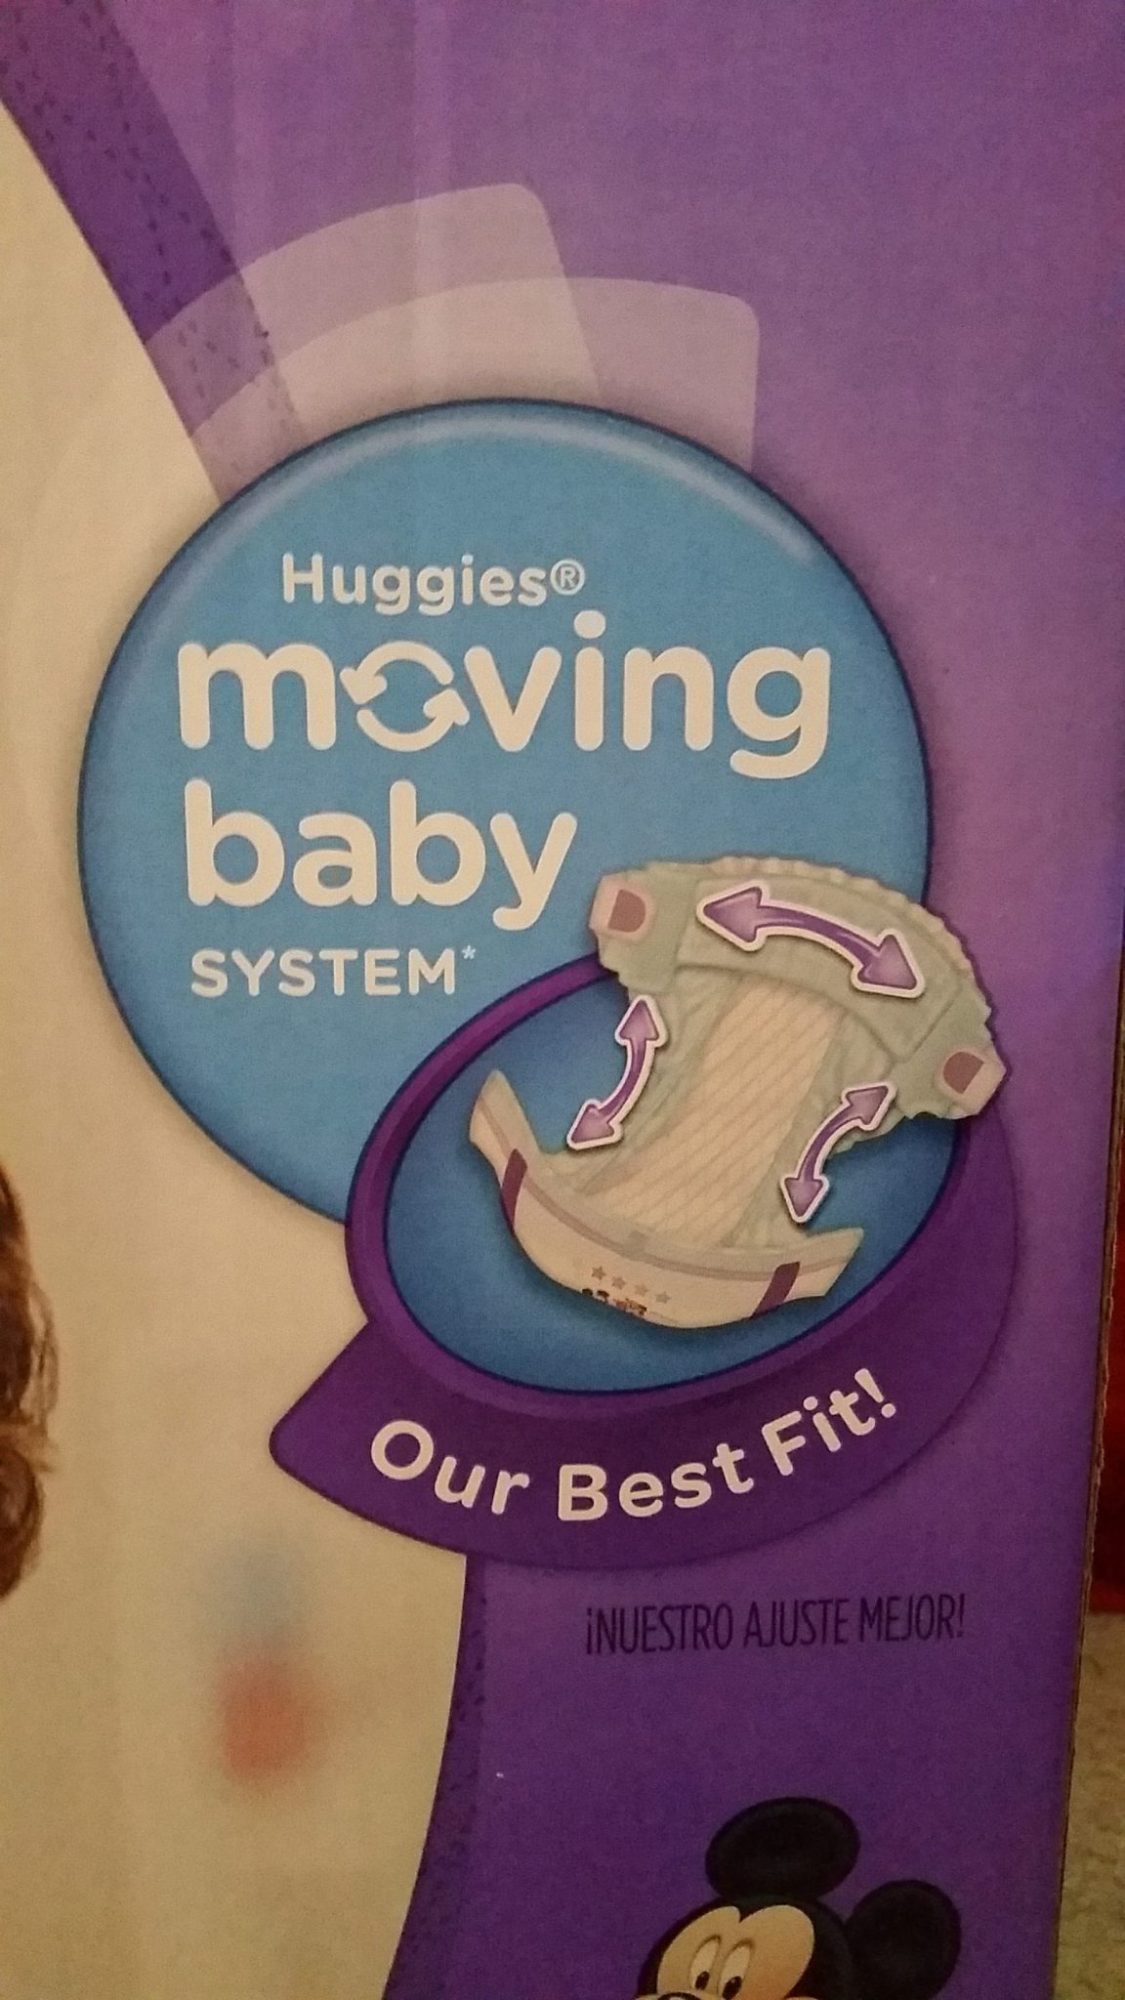 #SPONSORED #BIGGESTPACKEVER, How to save on diapers with Sam's Club, biggest pack ever, huggies